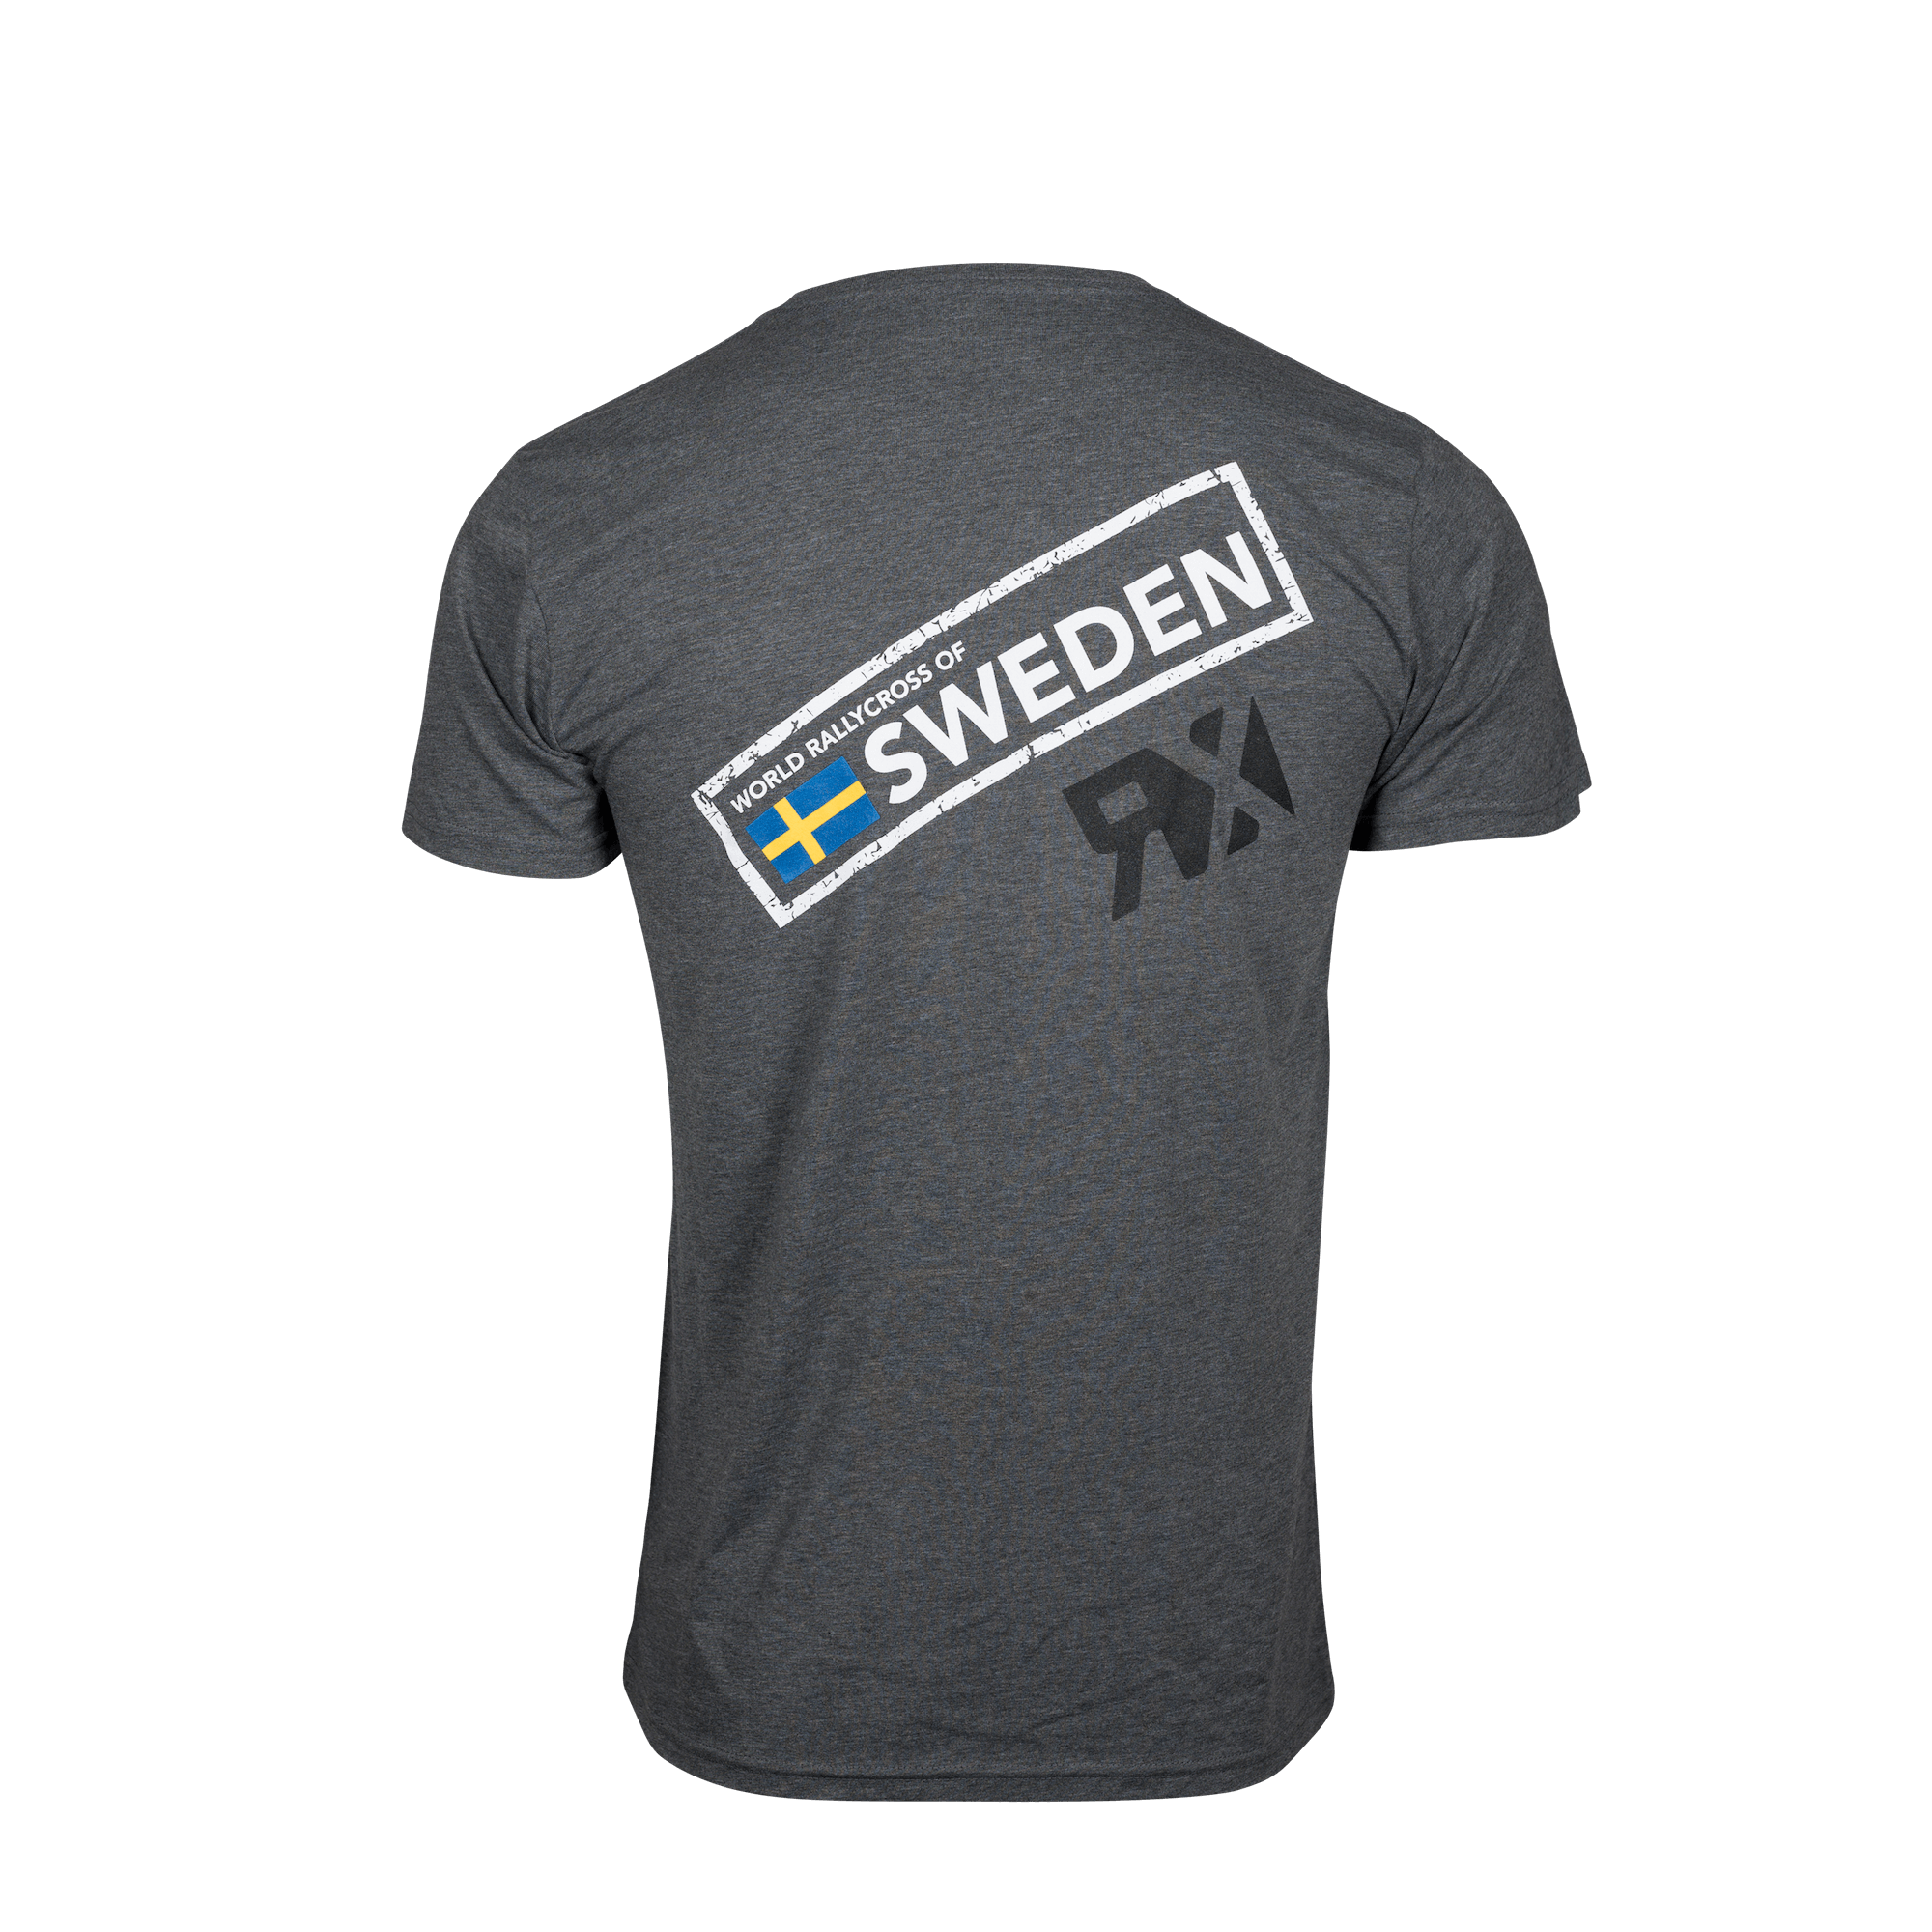 RX Sweden Event Stamp Dark Grey T-Shirt